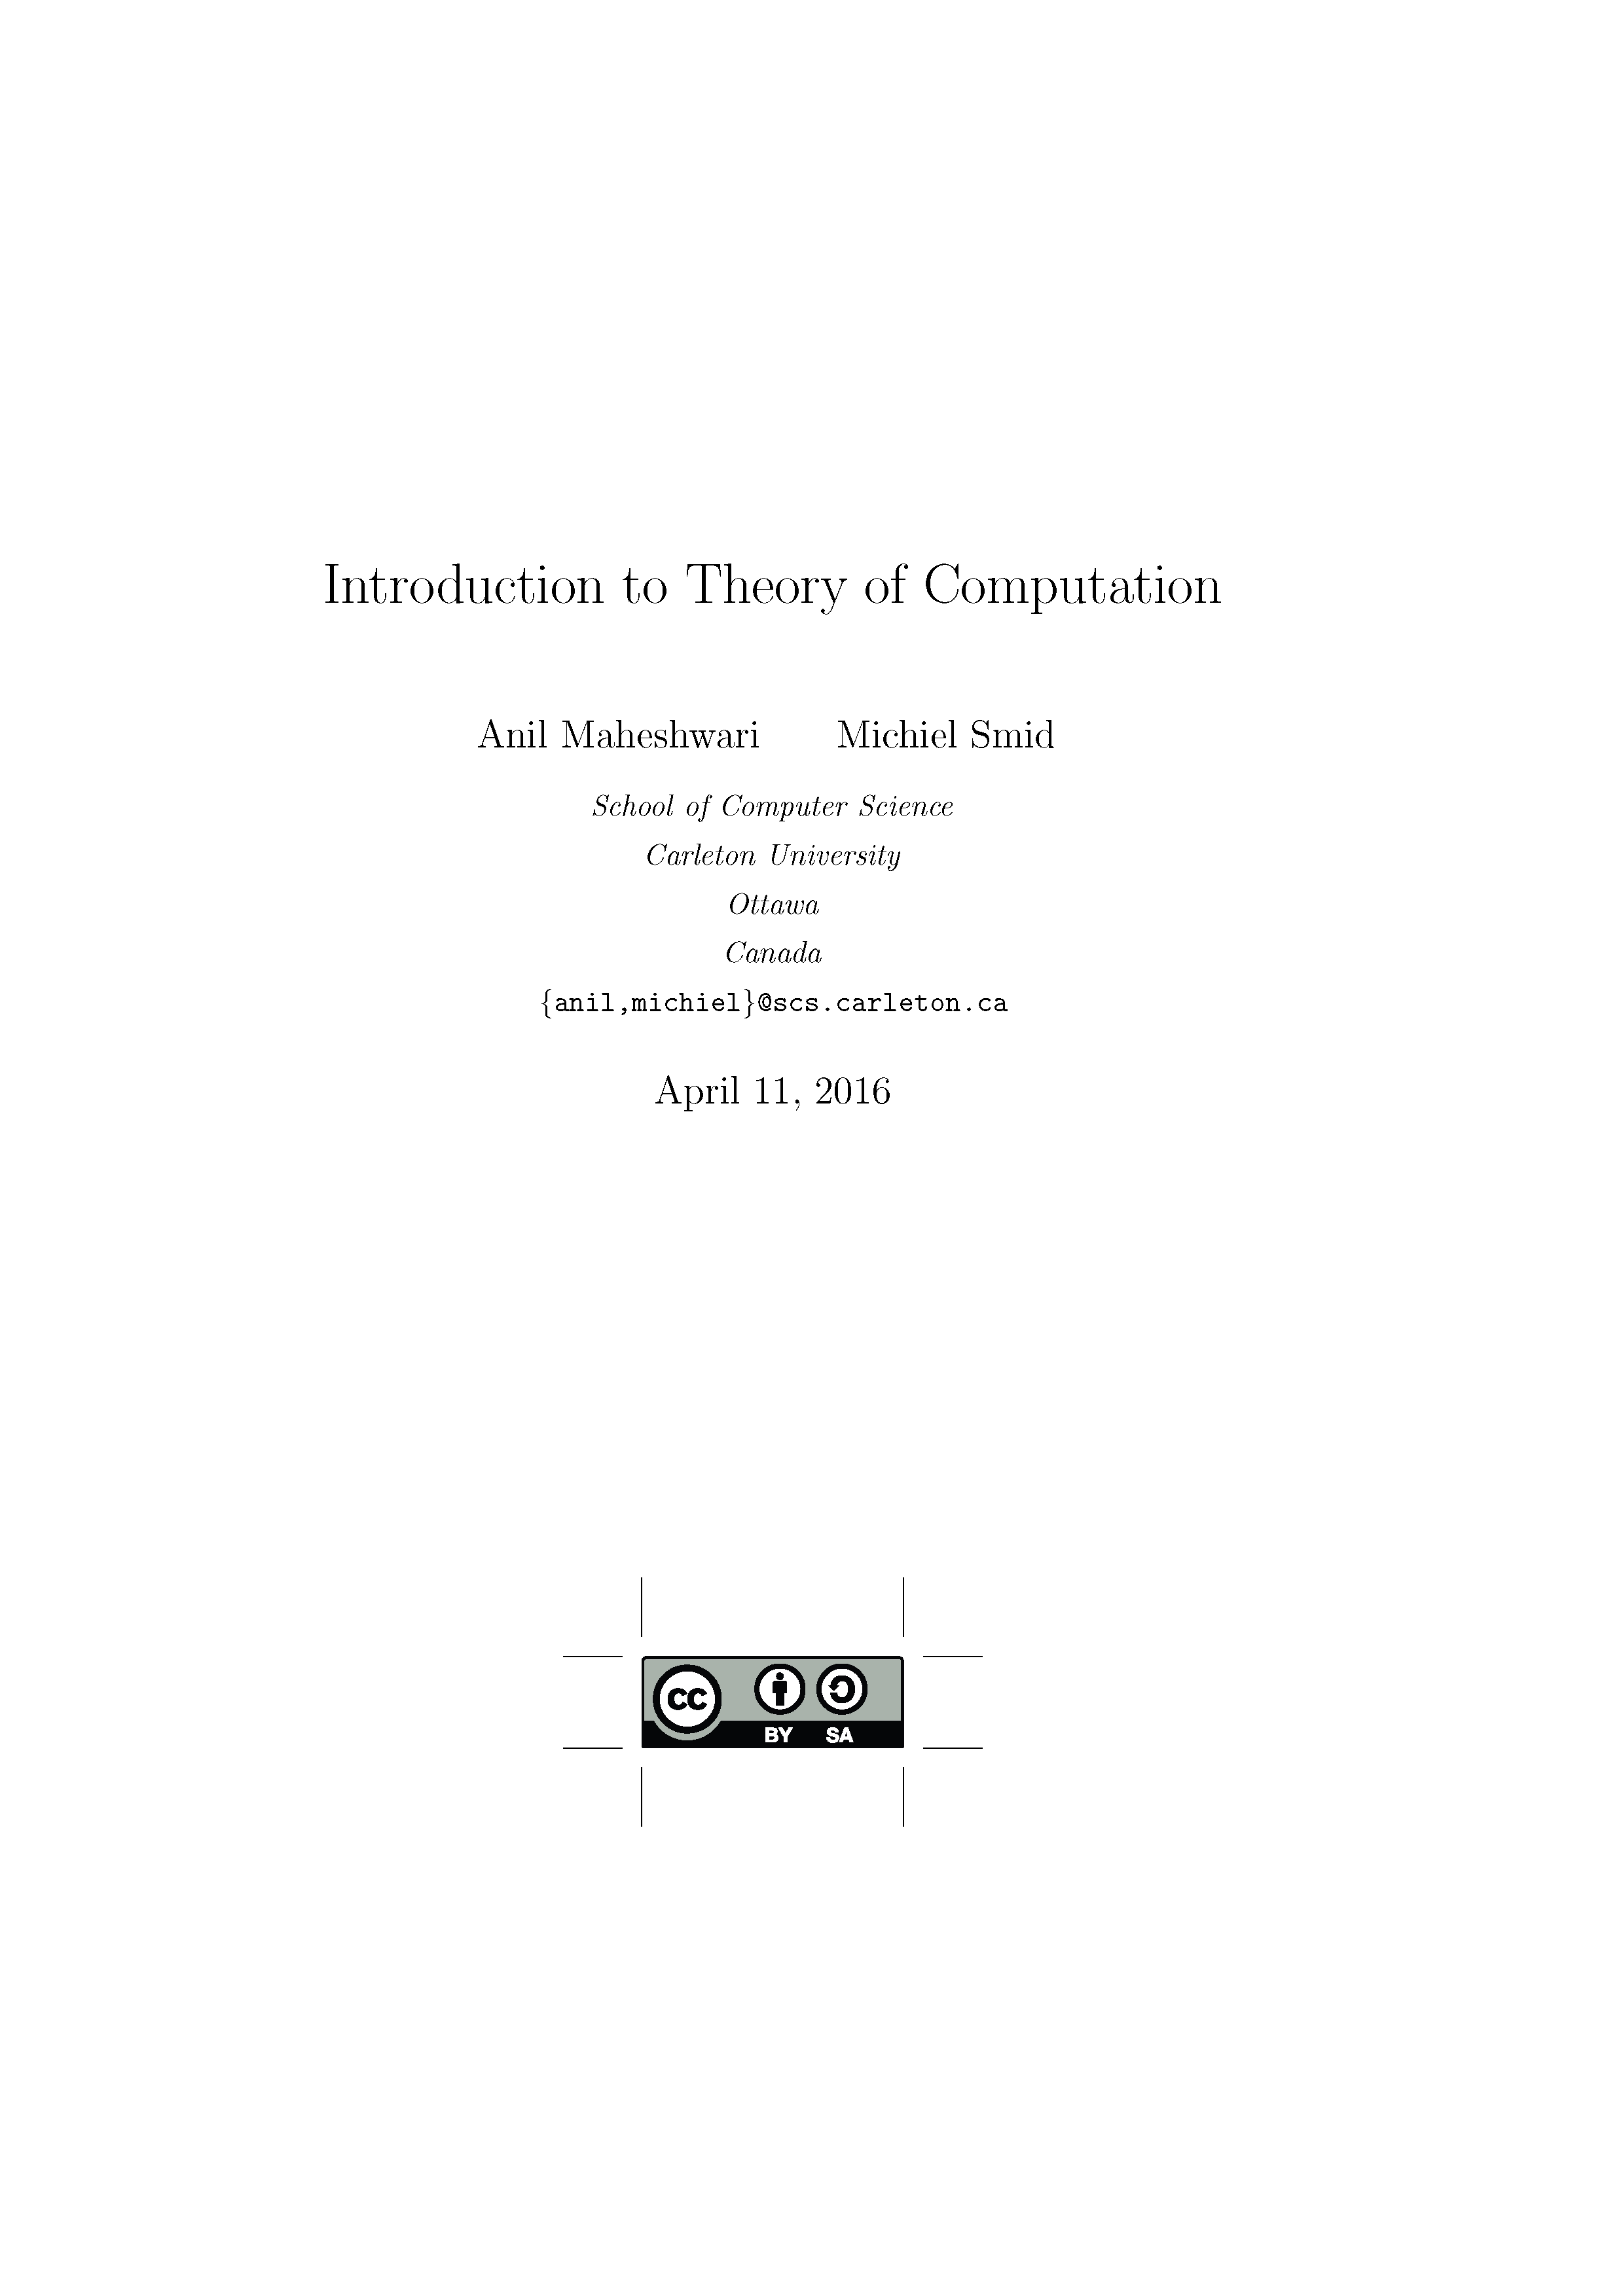 Introduction to Theory of Computation